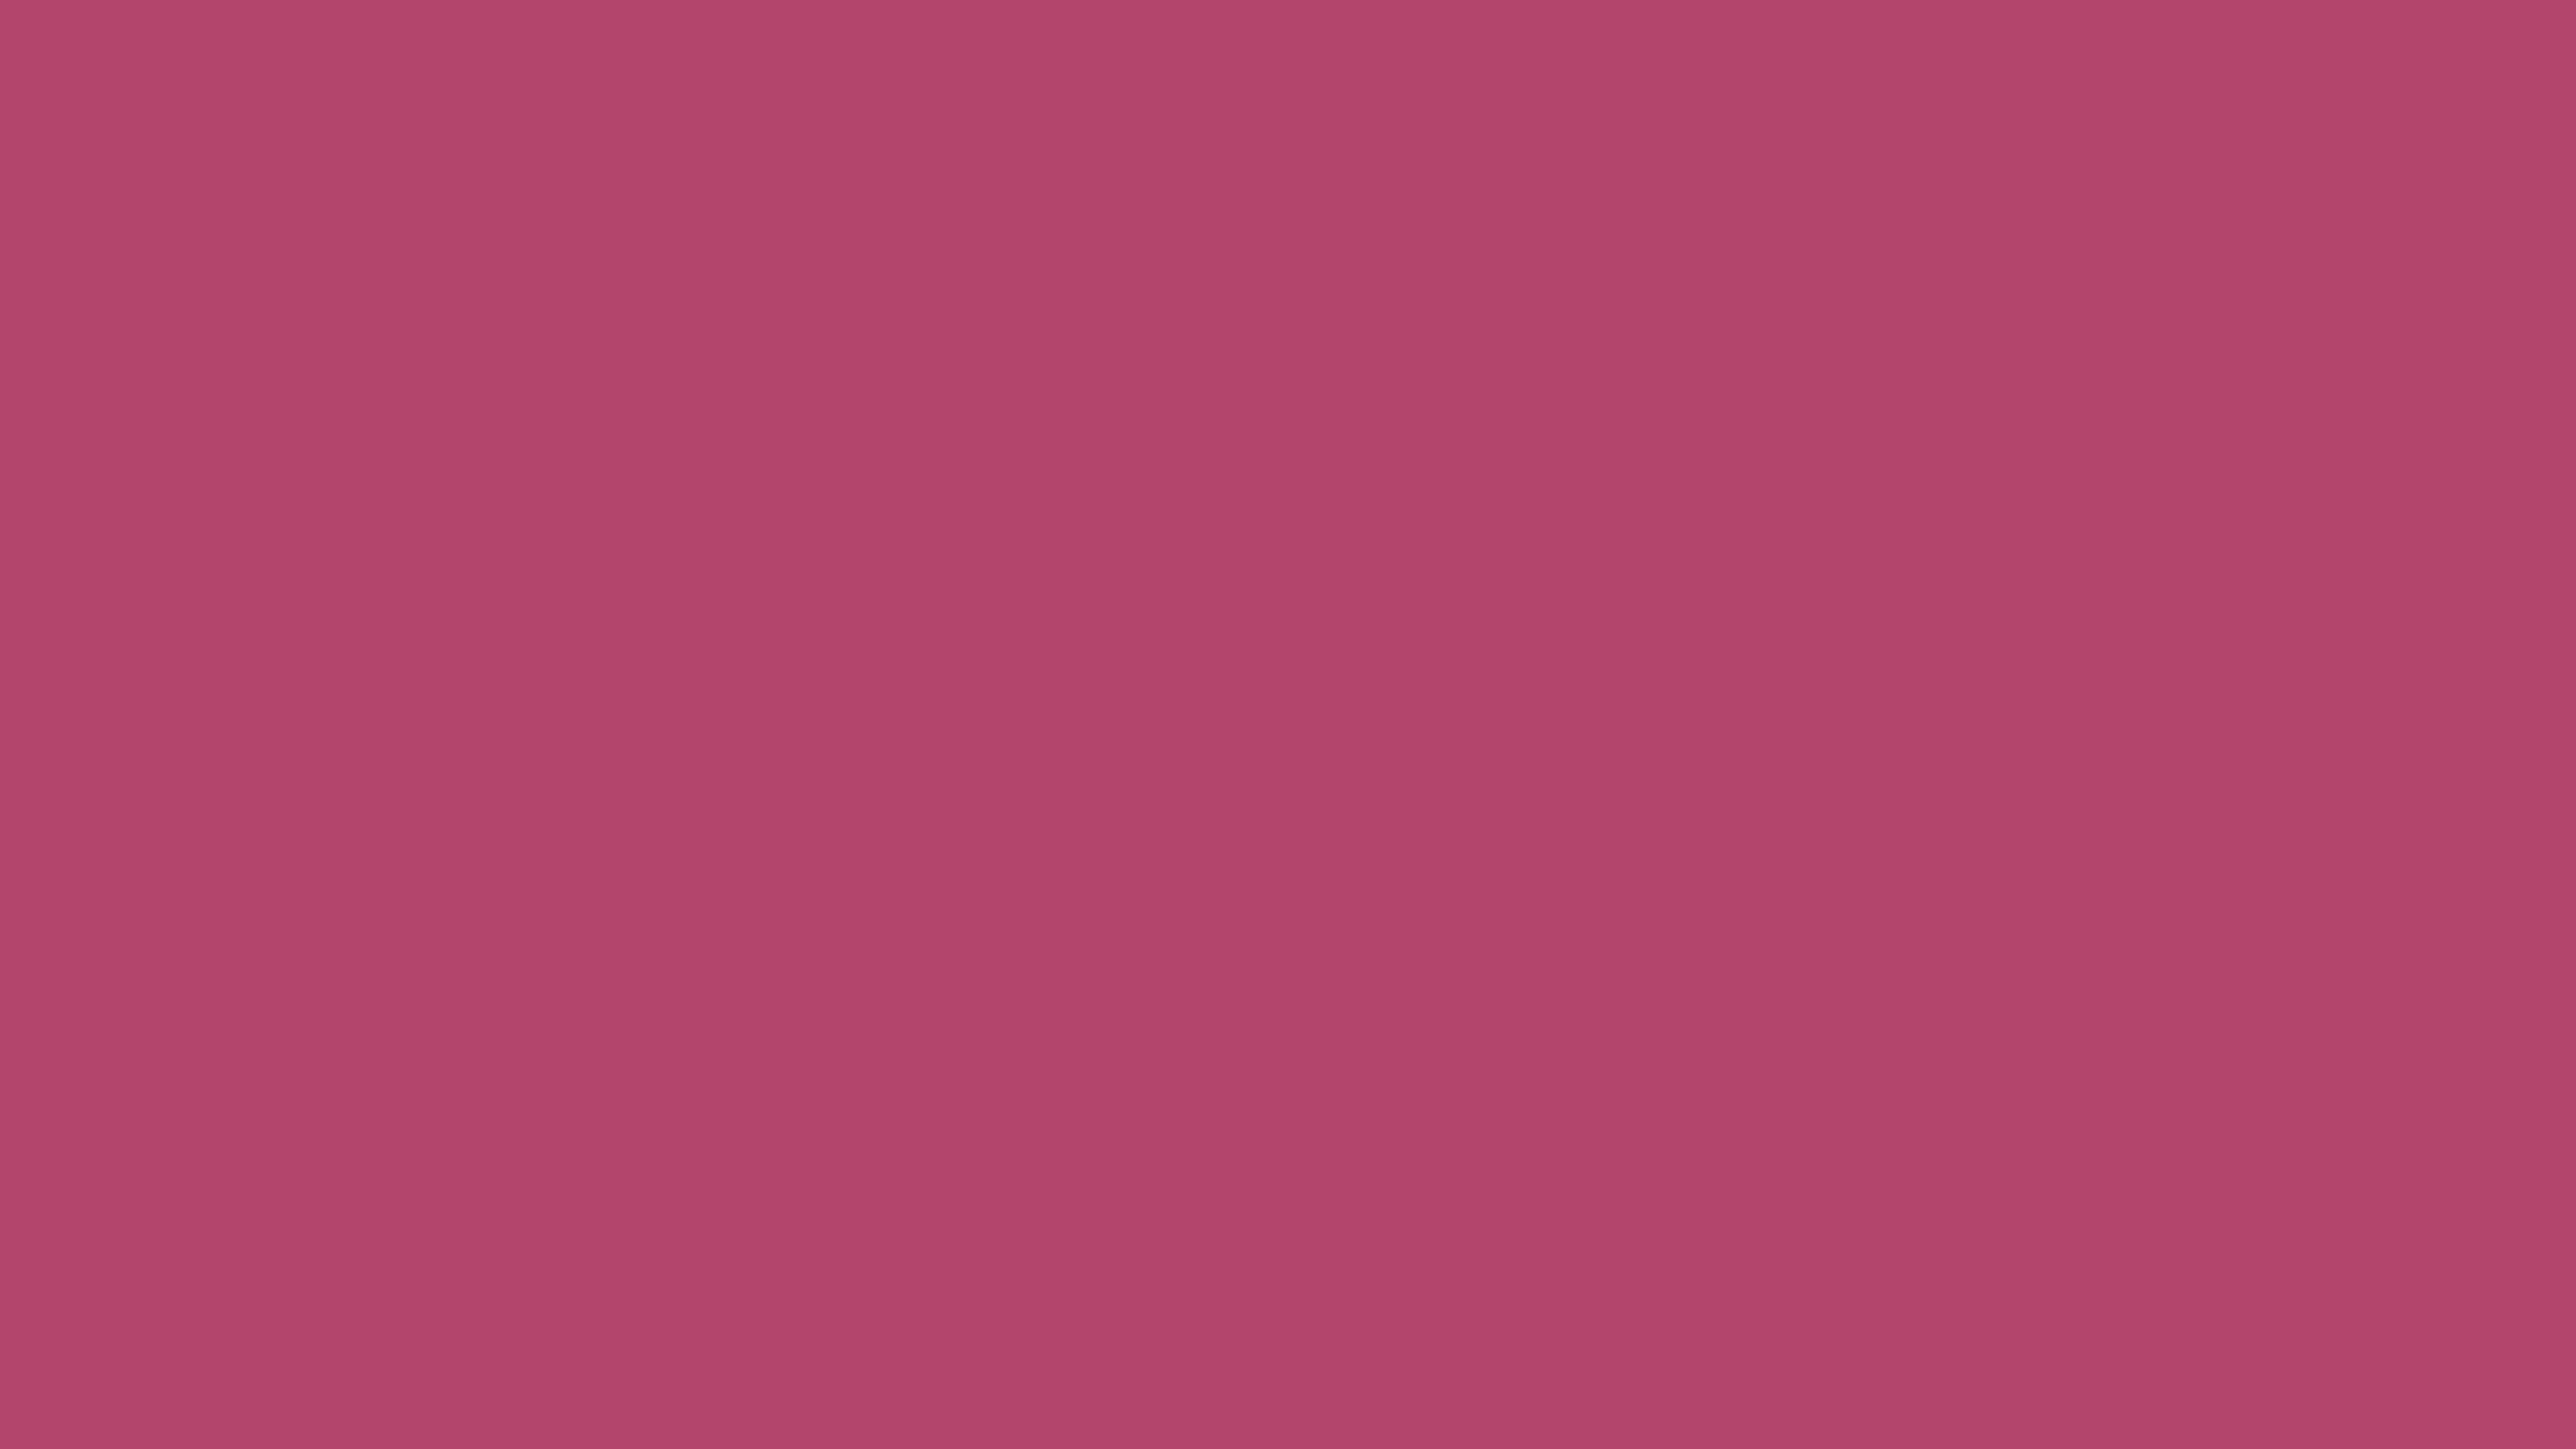 3840x2160 Raspberry Rose Solid Color Background